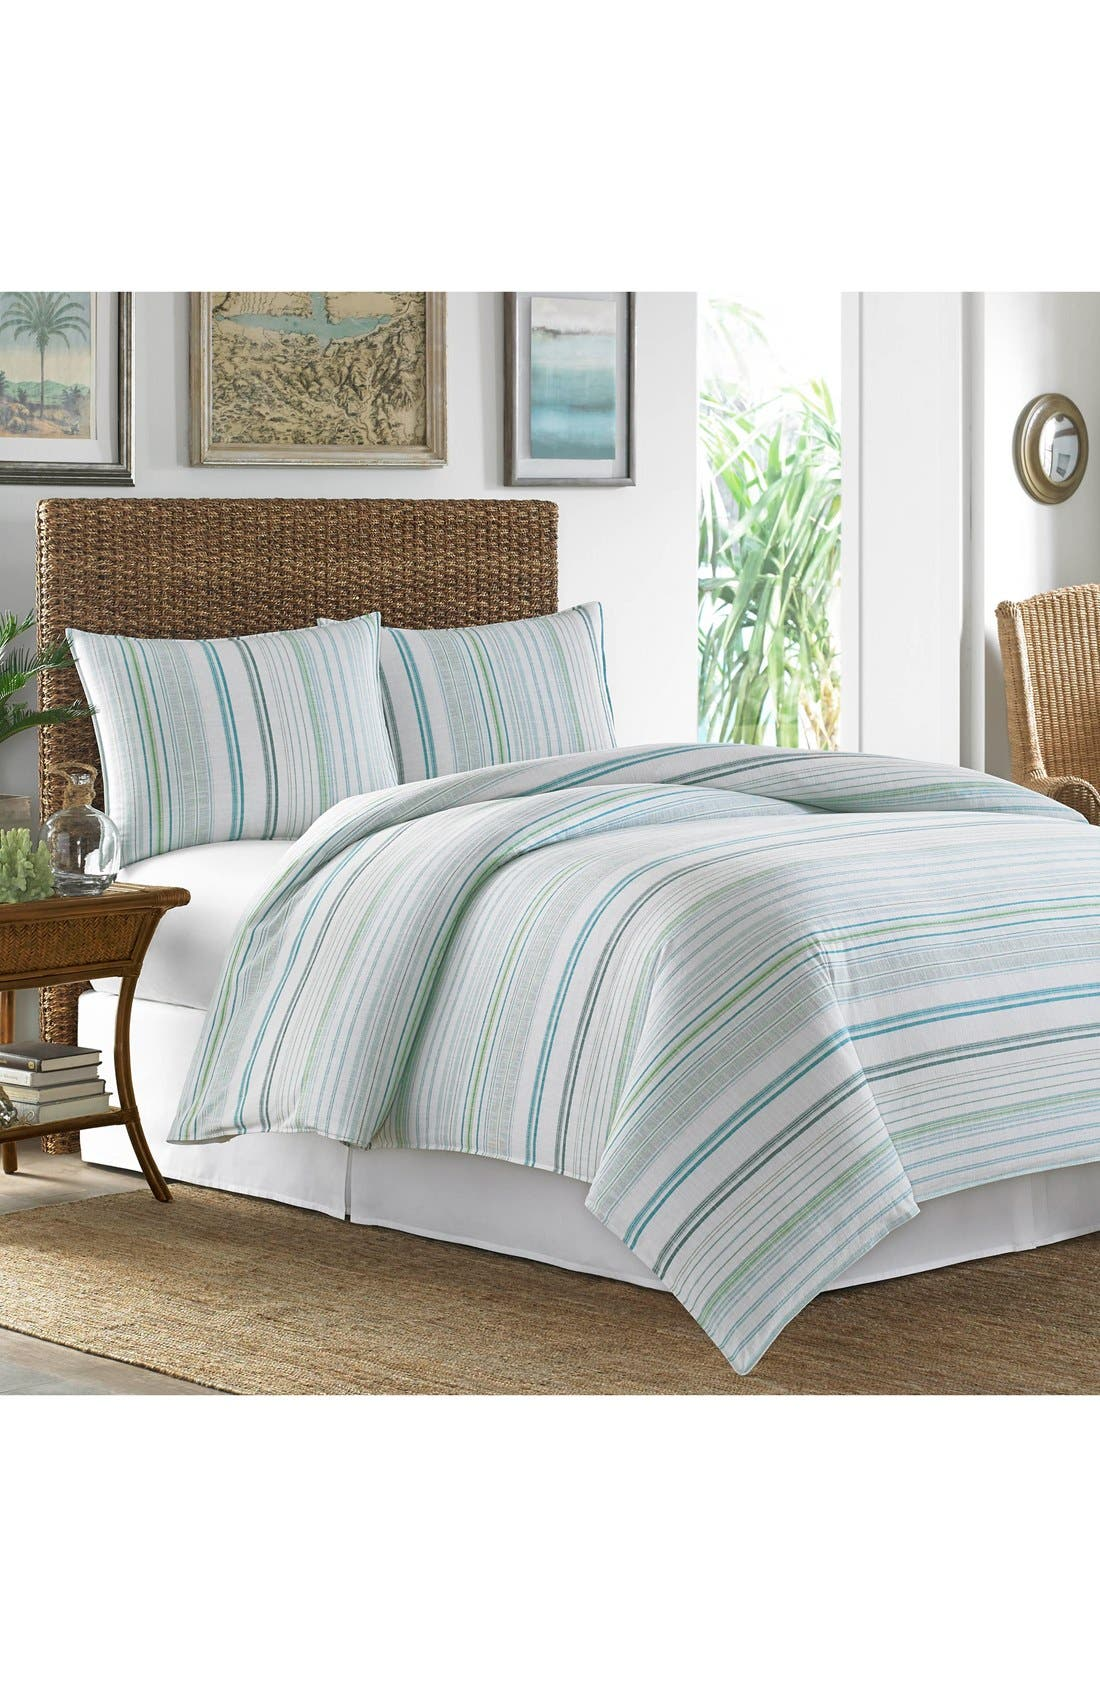 'La Scala Breezer' Duvet Cover,                         Main,                         color, 440